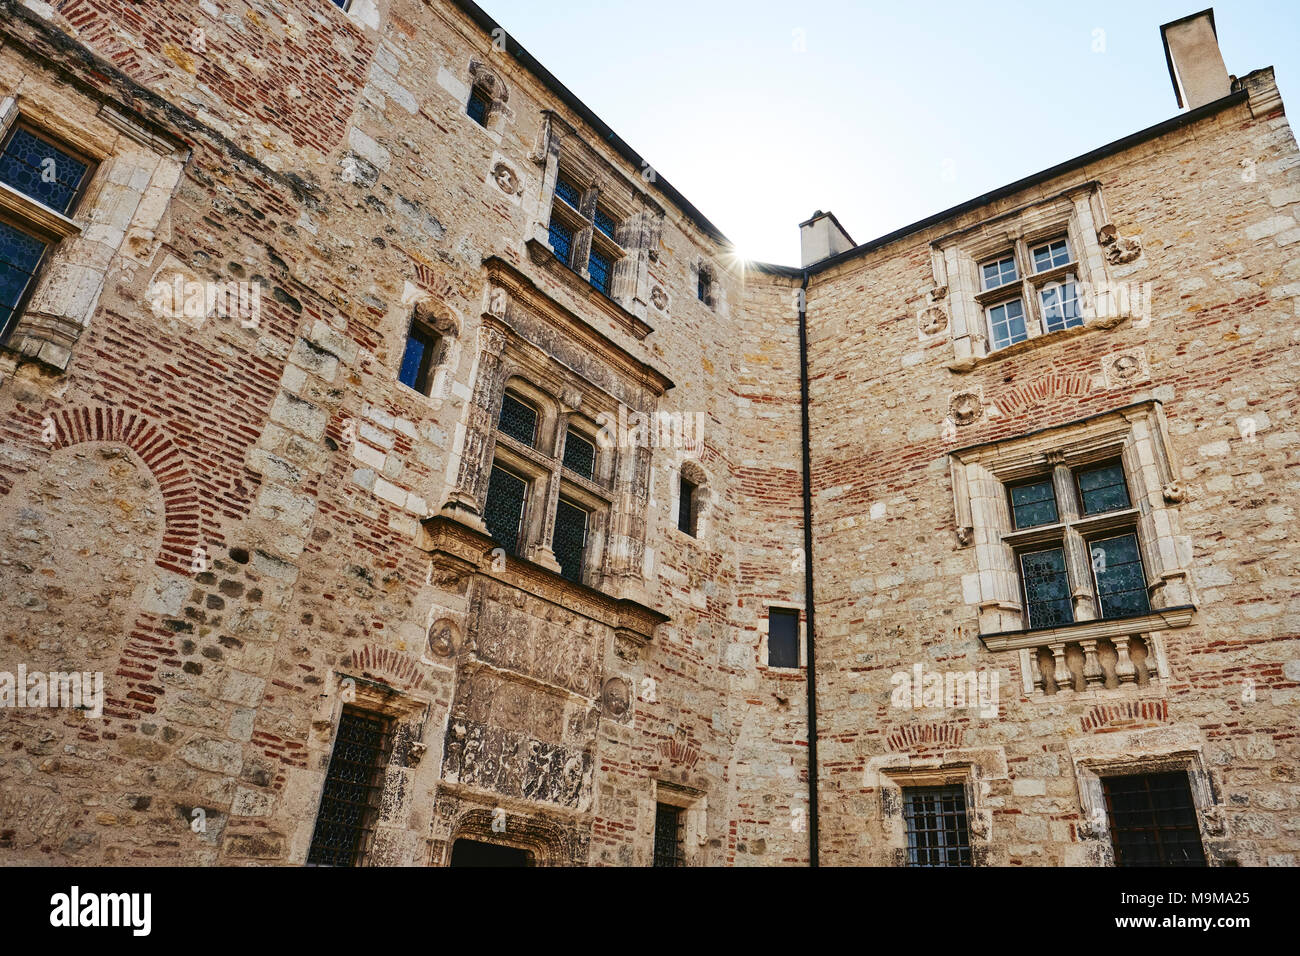 A building detail in the historic town of Cahors in the Lot region of France. Stock Photo